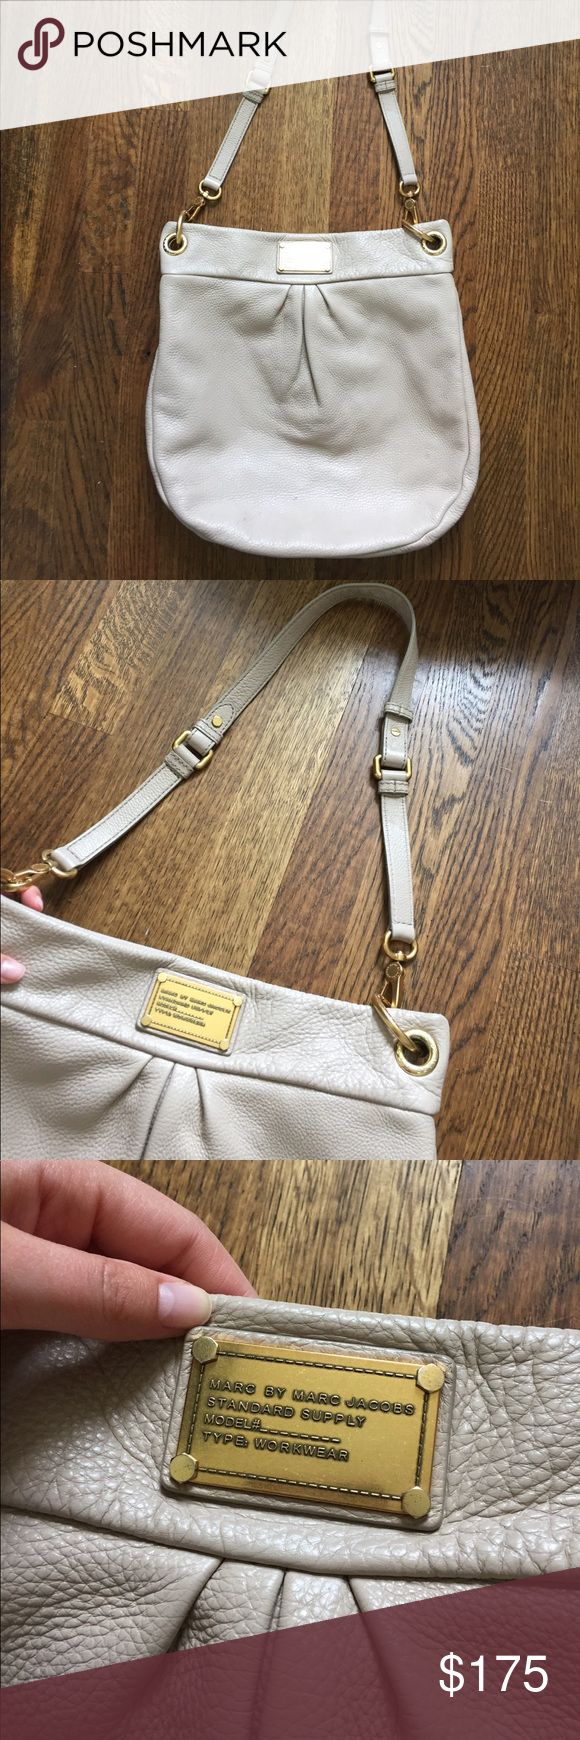 Marc By Marc Jacobs Leather Hobo Bag Beautiful and neutral sand color with gold hardware. Top handle and cross body strap. Minor imperfections shown in photo. Not noticeable at all. Inner zipper and two pockets in the inside lining. In near perfect condition. Love this bag but looking for something smaller. Marc By Marc Jacobs Bags Hobos